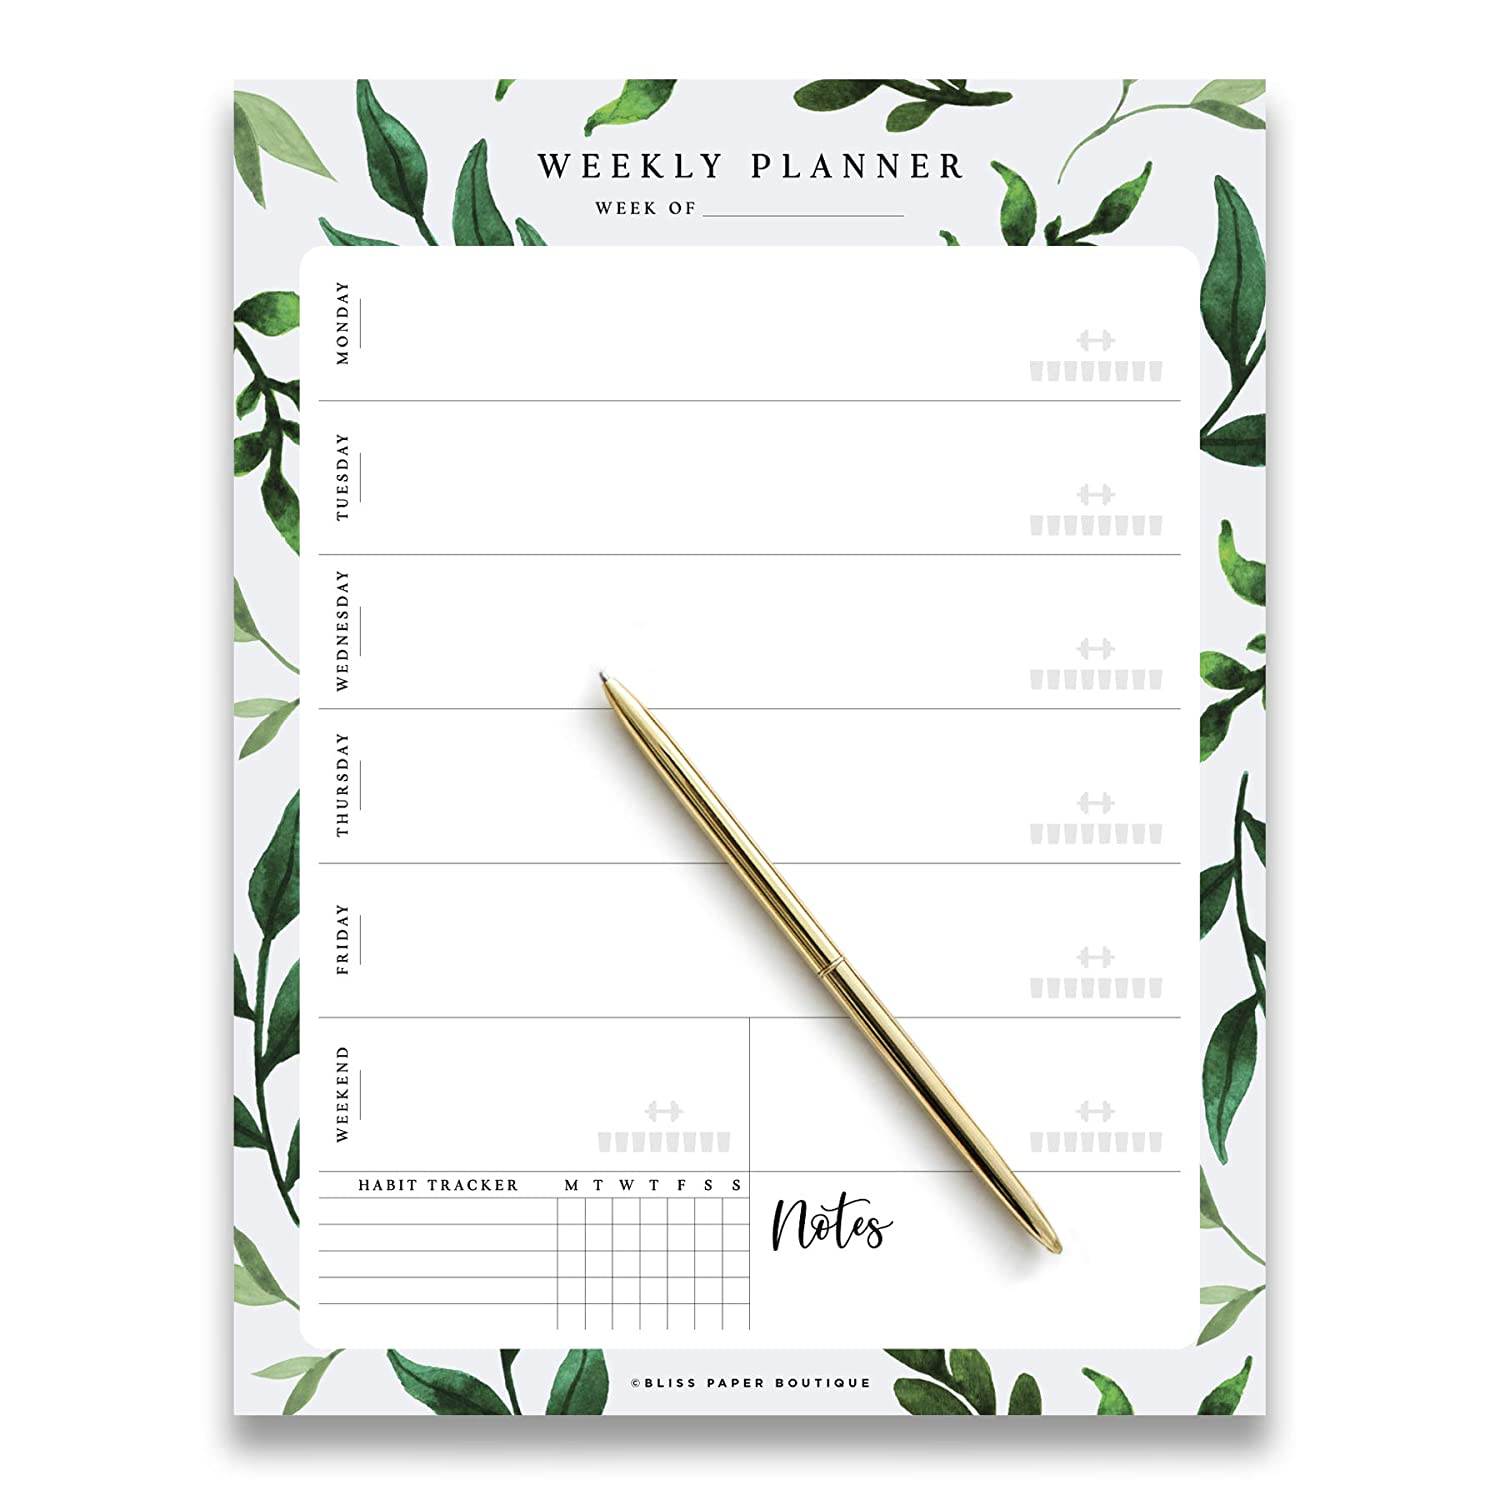 Weekly Planner Pad Tear Off Greenery Design, 50 Undated Pages, To Do List, Desk Notepad, Week Day and Weekend Organizer and Scheduler, Habit Tracker, Vertical Orientation from Bliss Paper Boutique